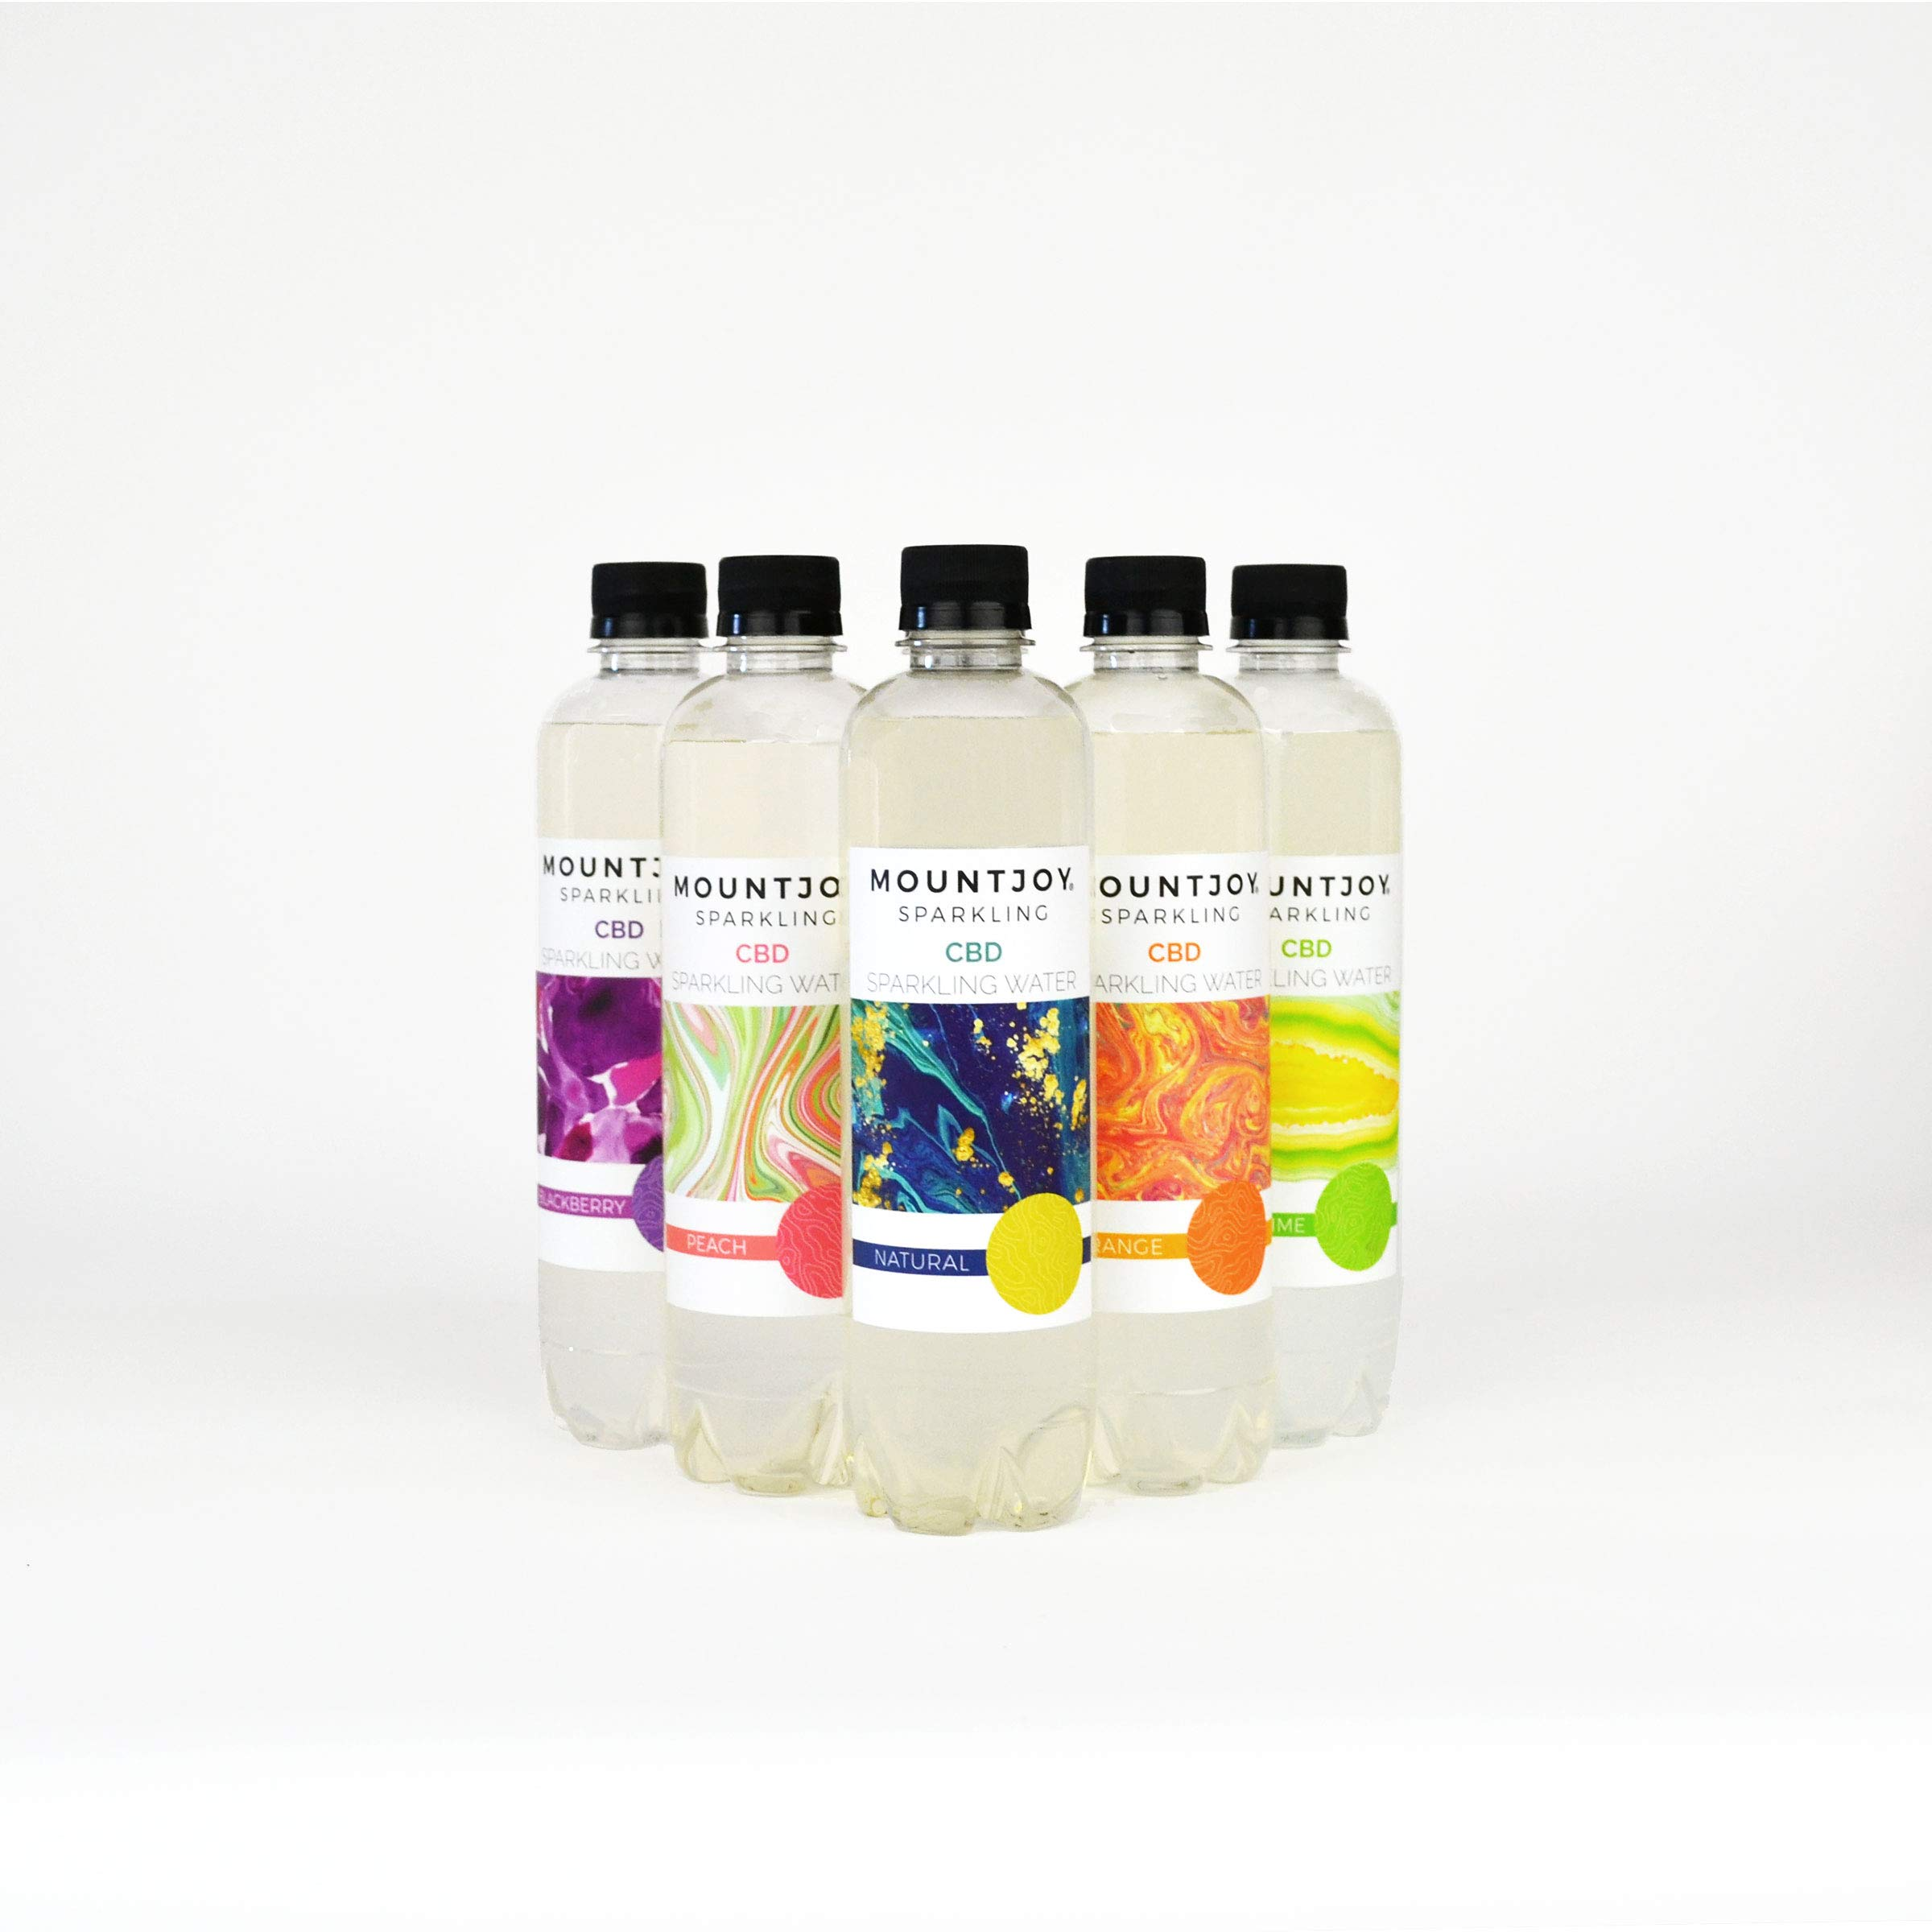 Mountjoy Sparkling CEE-BEE-DEE Assorted Flavors - 16 oz - 6 Pack